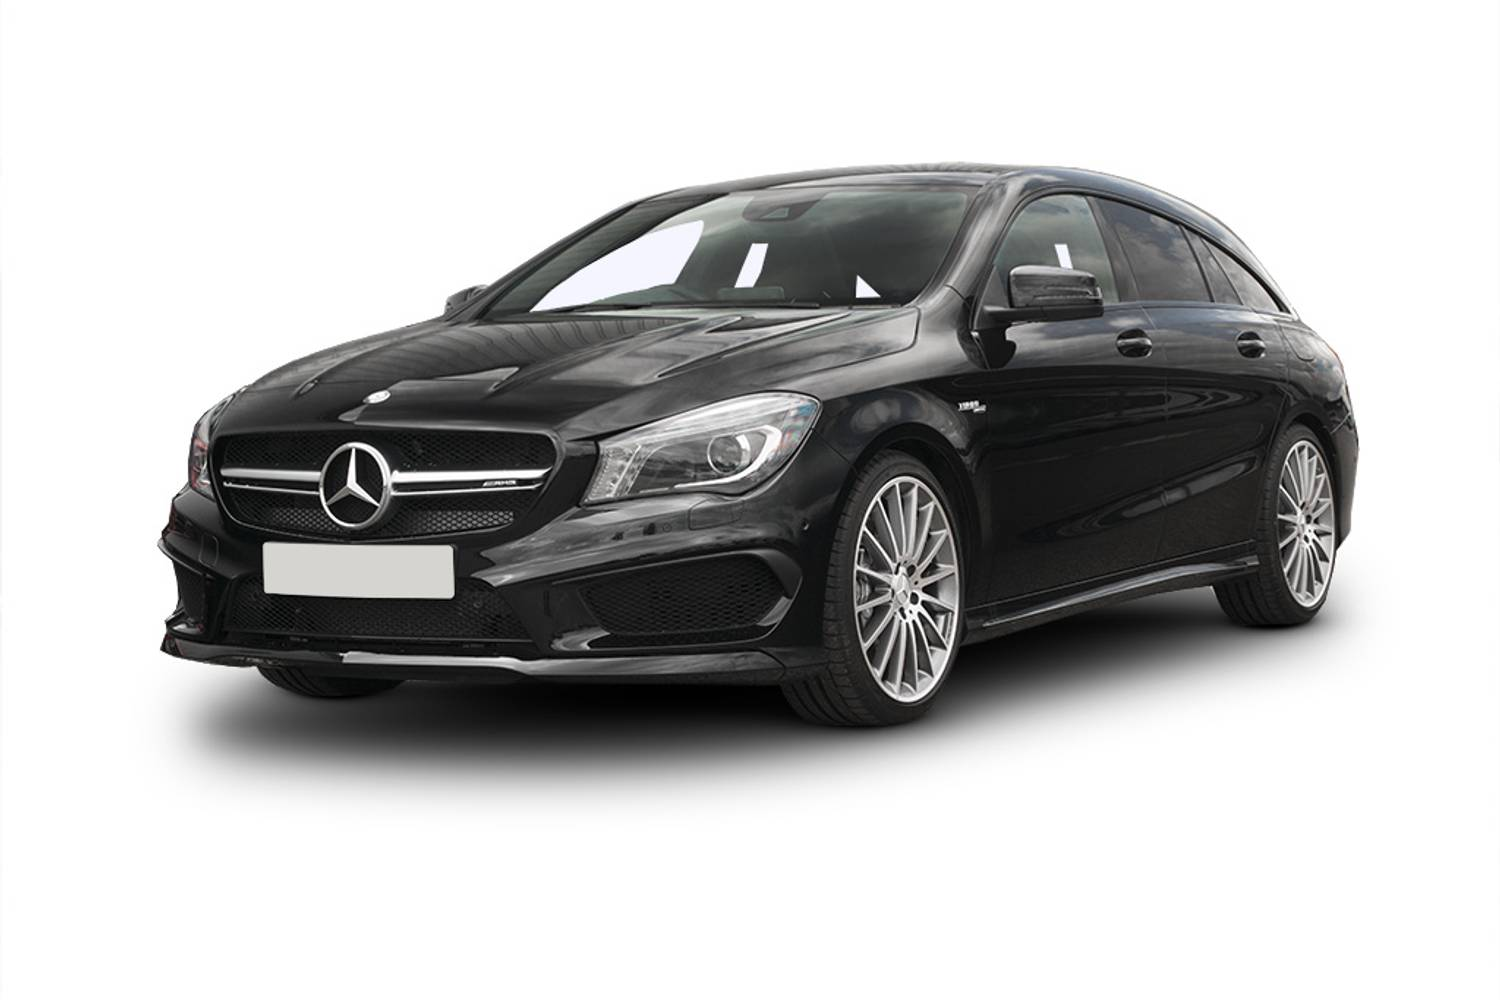 2015 cla 45 amg specs 2017 2018 best cars reviews for 2015 mercedes benz cla class cla 45 amg